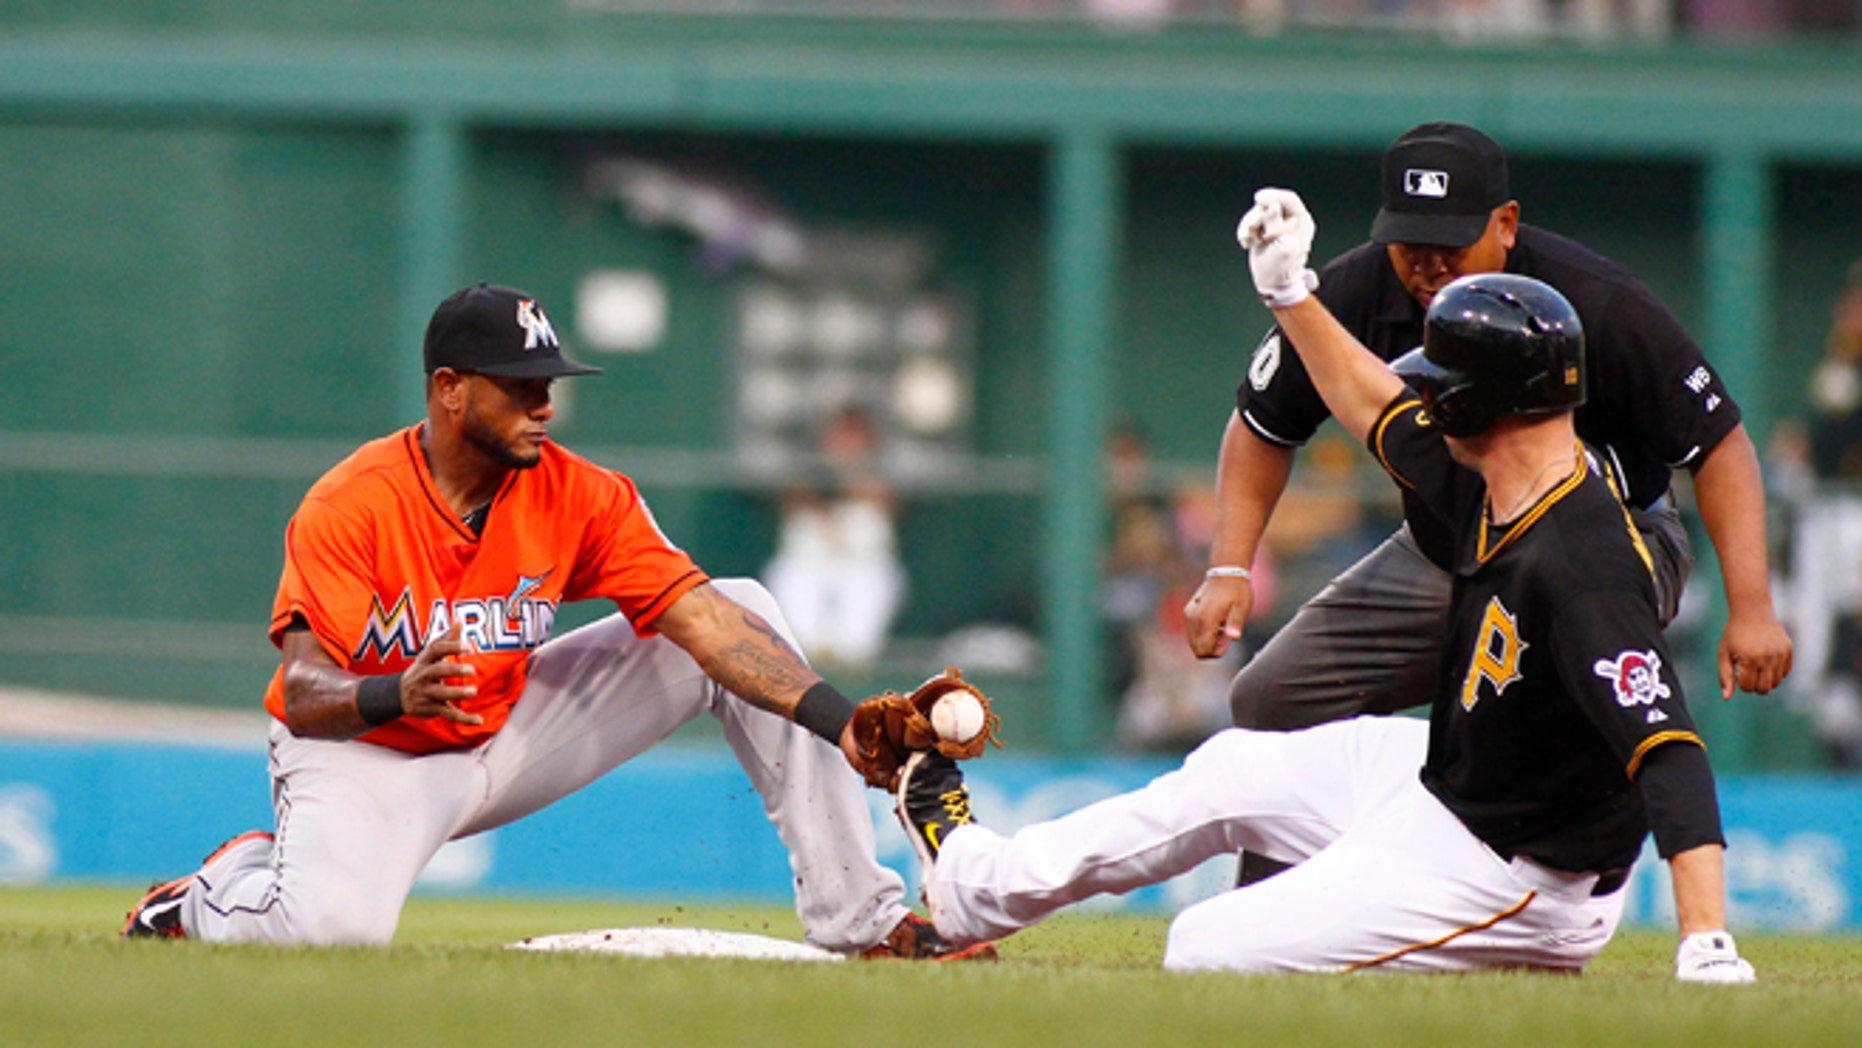 PITTSBURGH, PA - AUGUST 07:  Jordy Mercer #10 of the Pittsburgh Pirates slides in safe against Jordany Valdespin #1 of the Miami Marlins during the game at PNC Park on August 7, 2014 in Pittsburgh, Pennsylvania.  (Photo by Justin K. Aller/Getty Images)